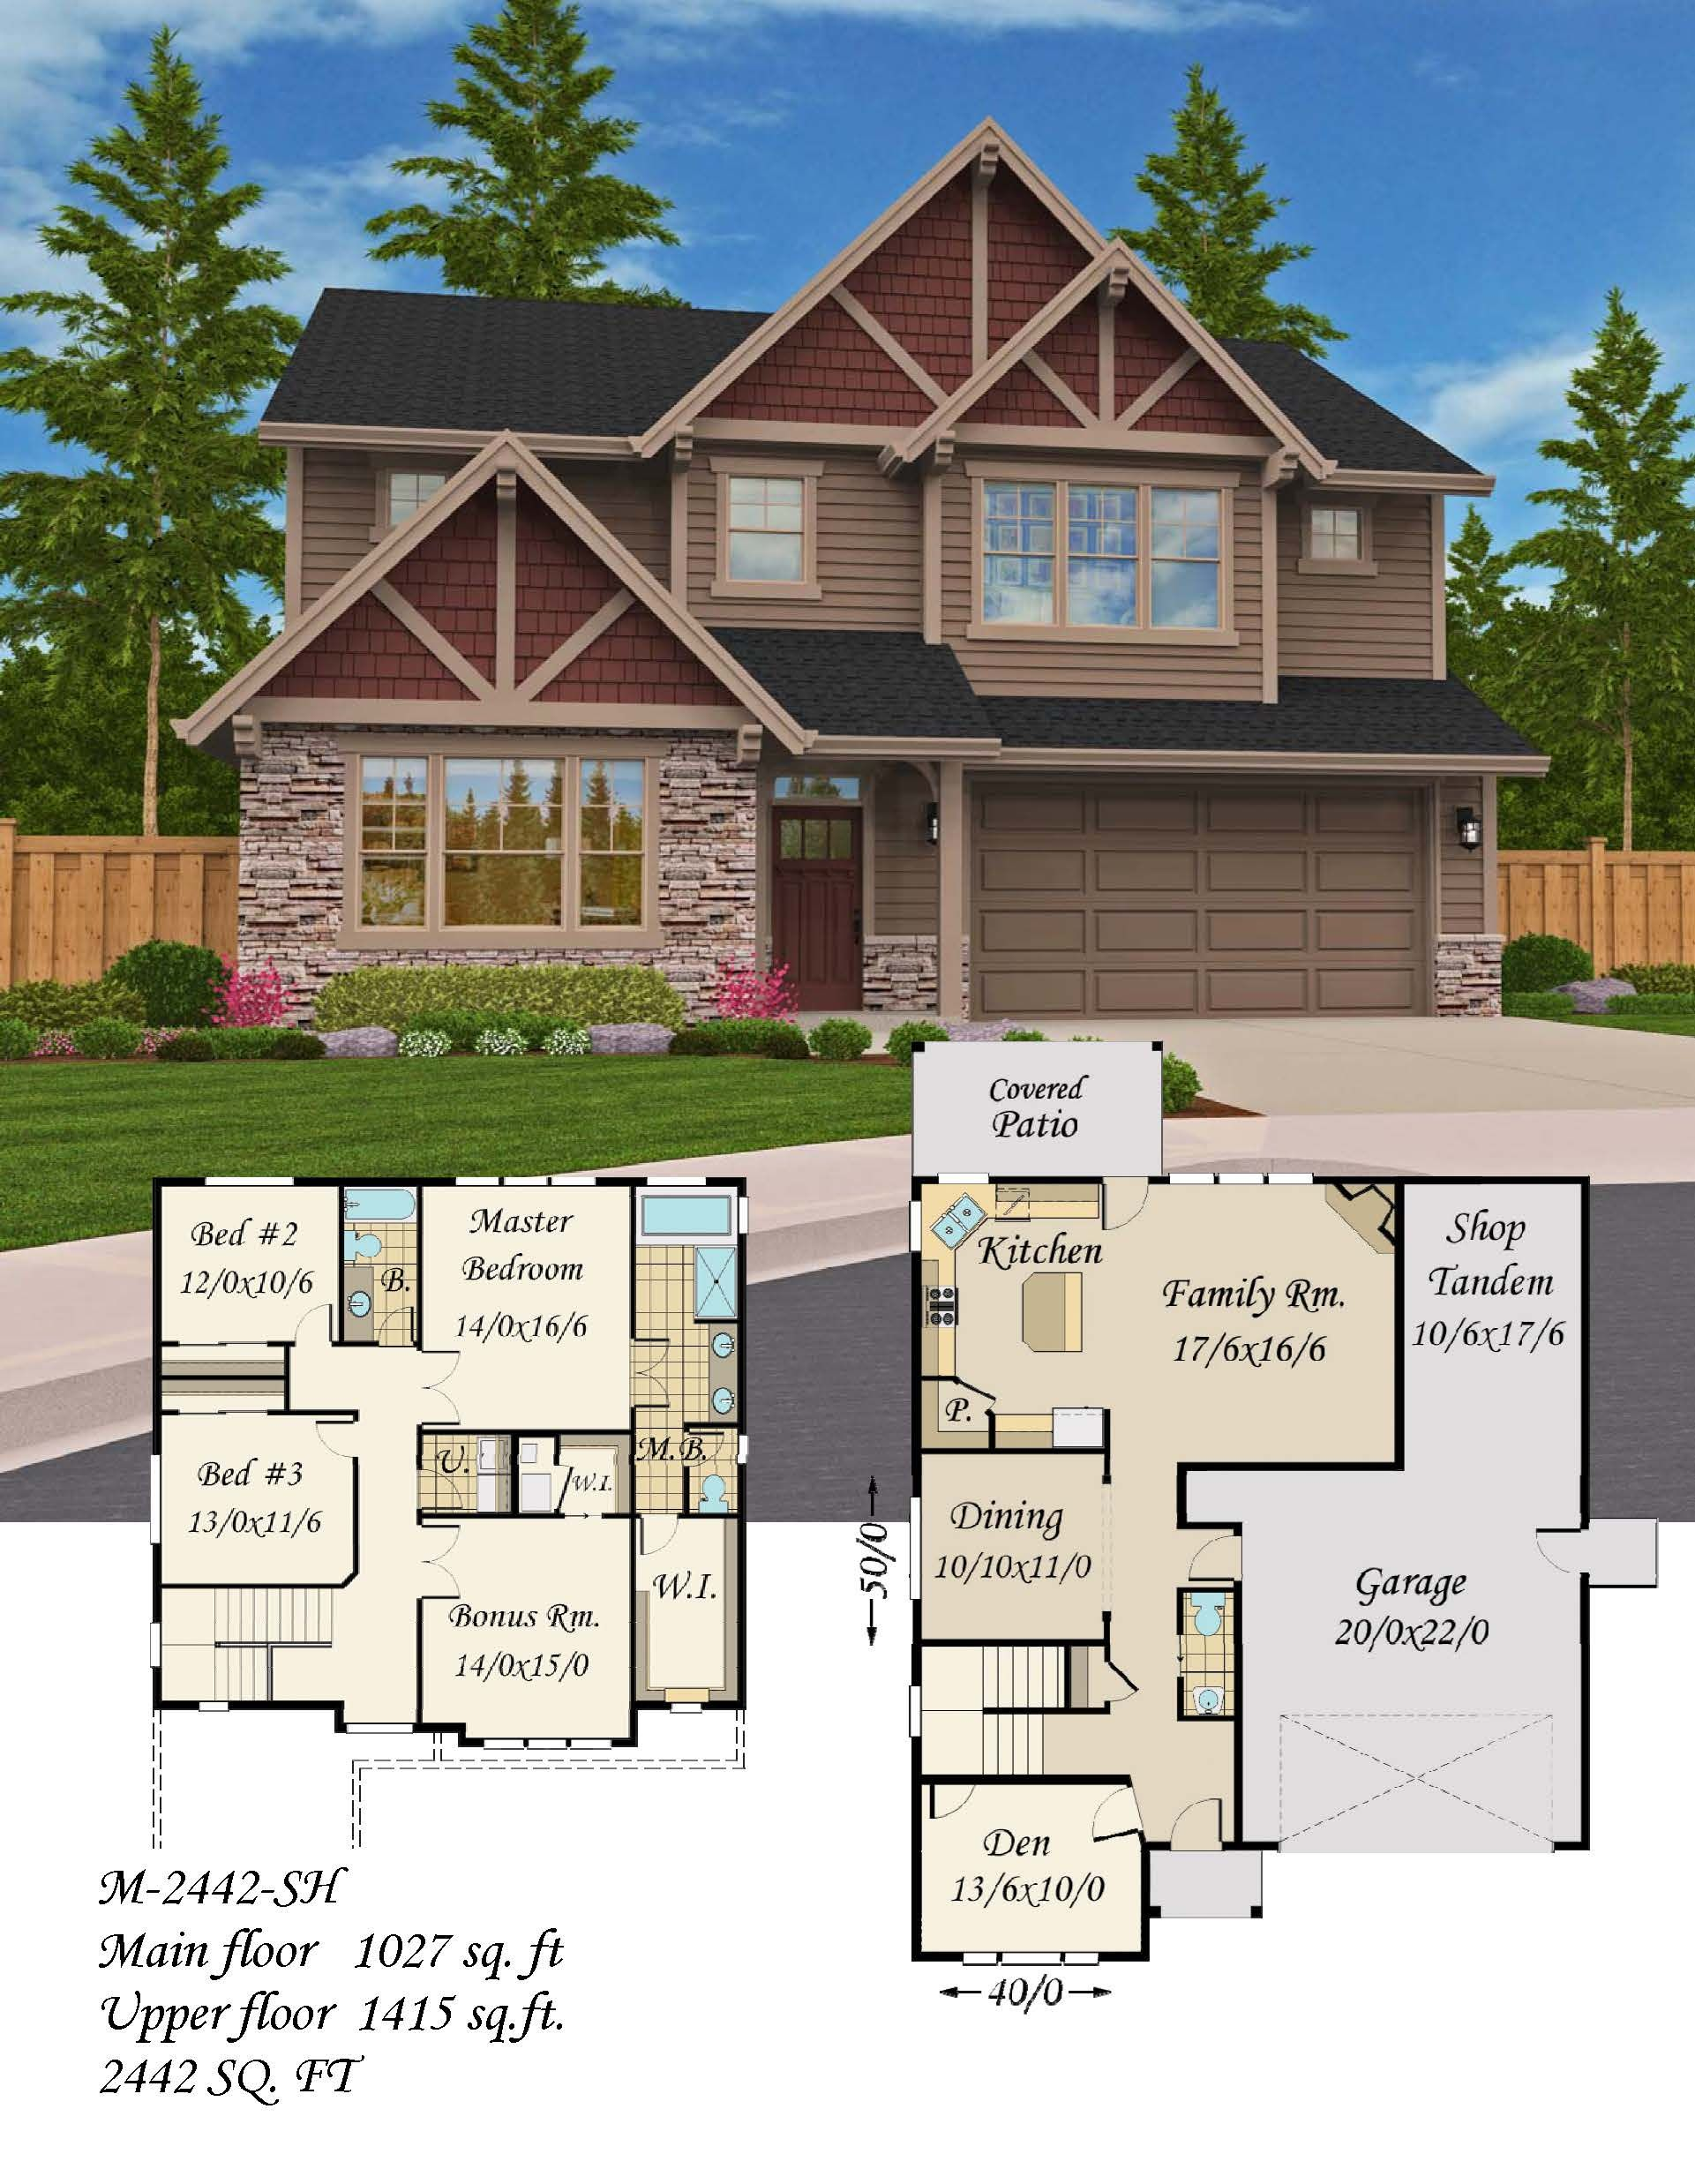 Strong Knee House Plan Bungalow House Plans Cottage House Plans Country House Plans Craf Craftsman House Plans Bungalow House Plans Narrow Lot House Plans